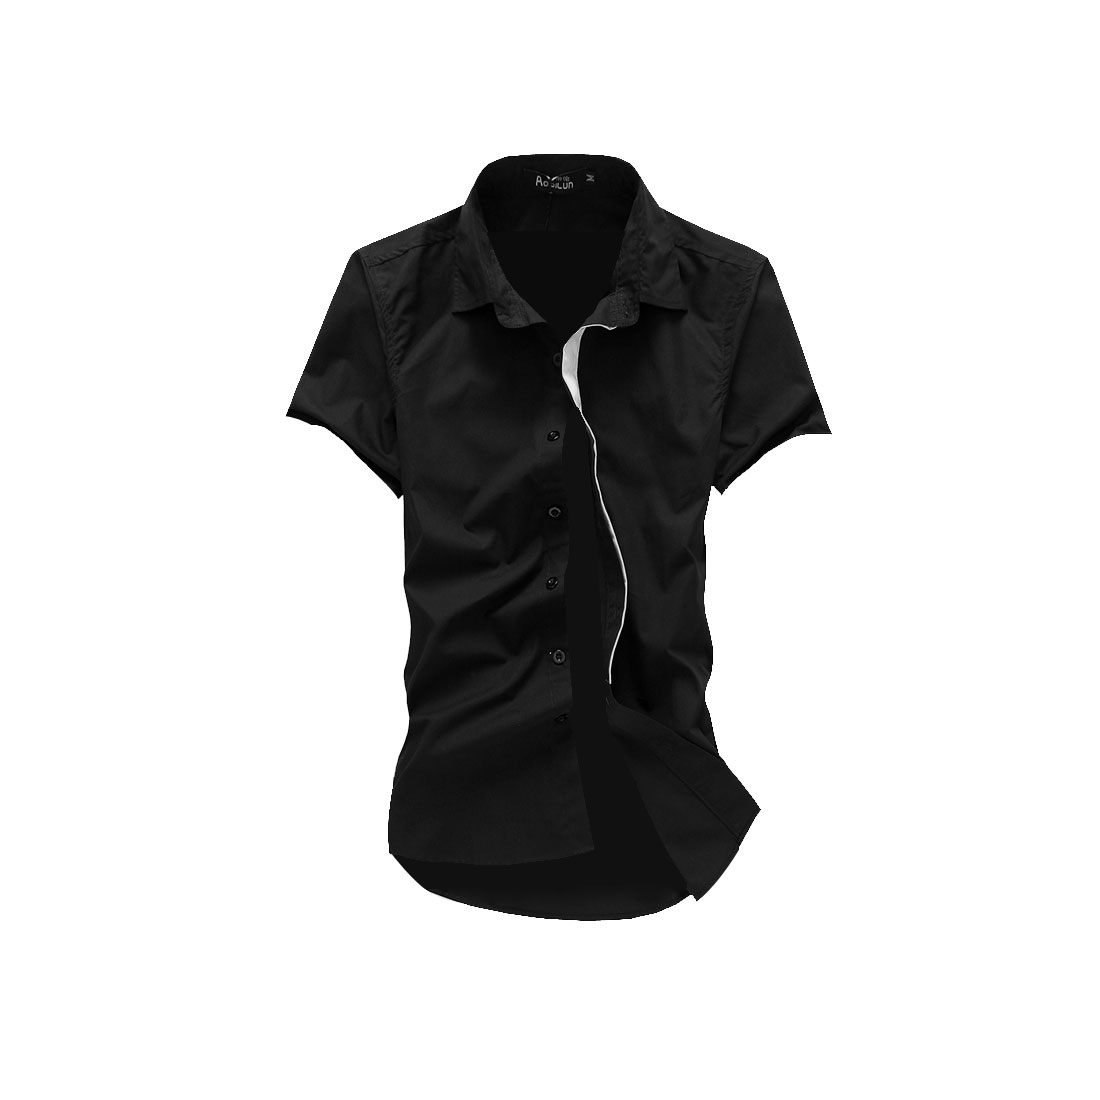 Men M Black Point Collar Short Sleeve Design Button Front Casual Shirt